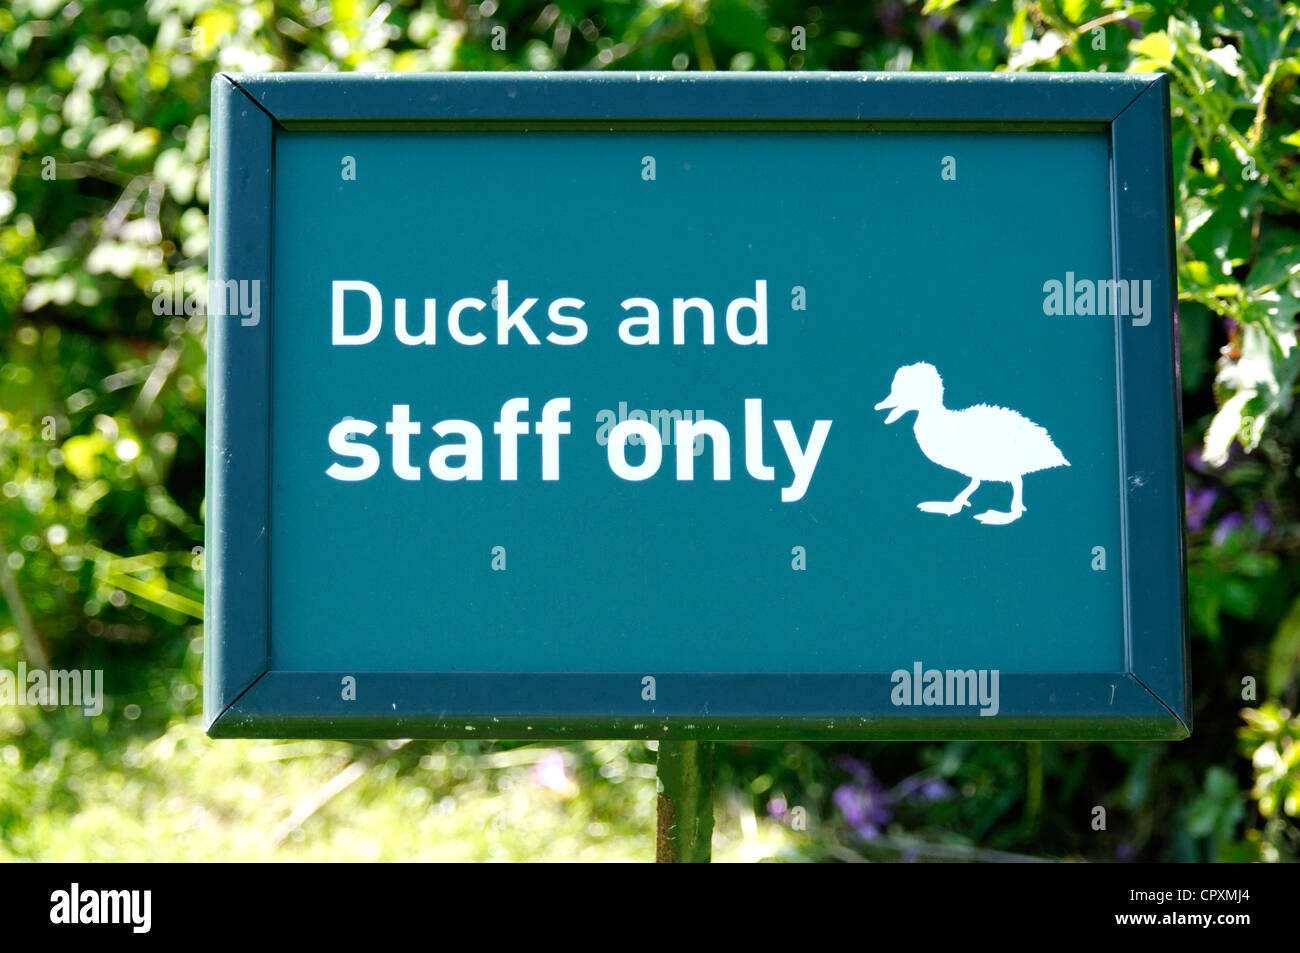 A humourous sign at a bird reserve - Stock Image